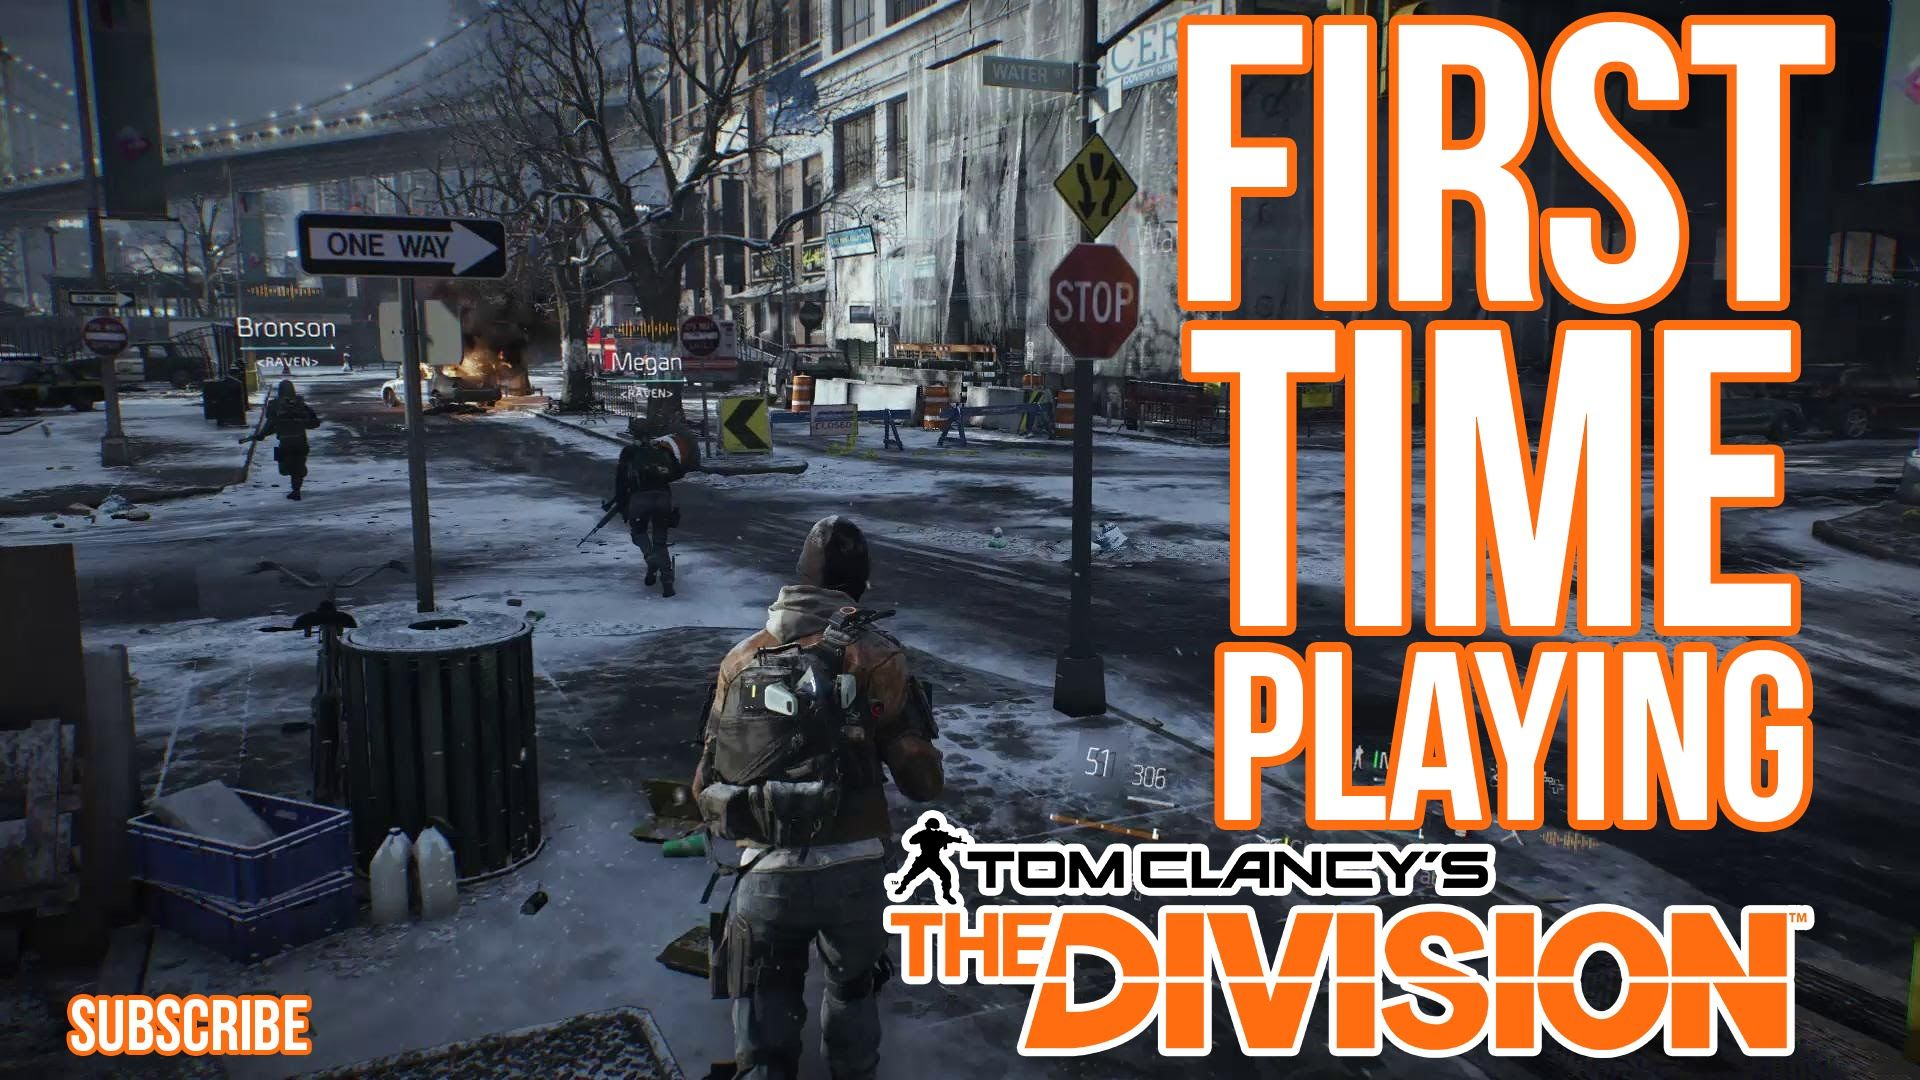 Playing Tom Clancy's The Division™ for the FIRSt time